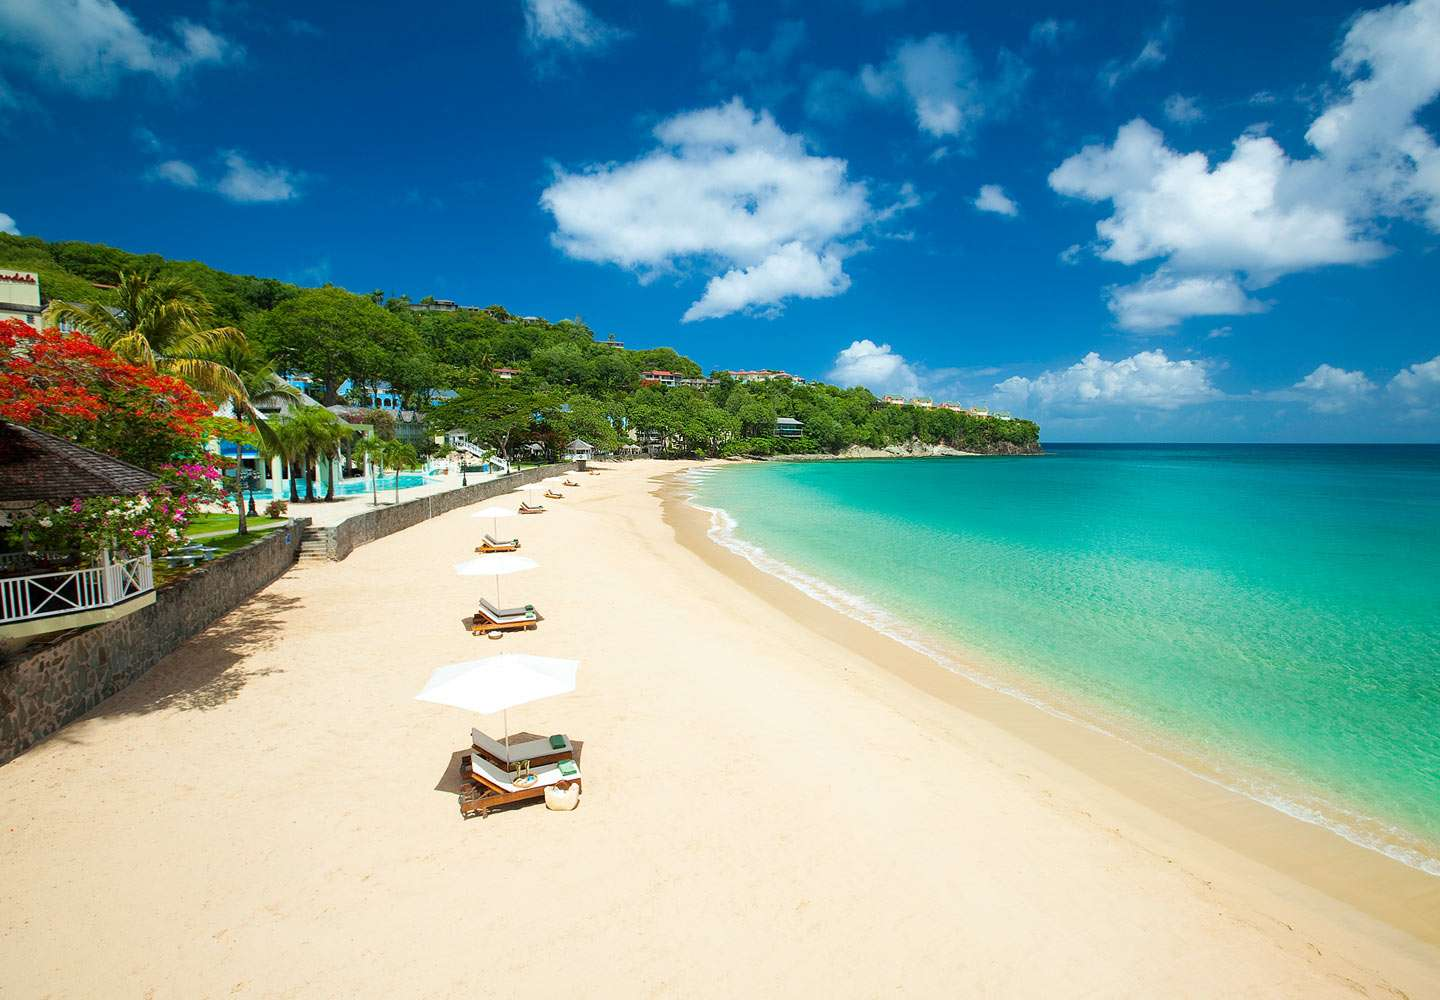 Sandals Regency La Toc Golf Resort & Spa, Castries, St Lucia